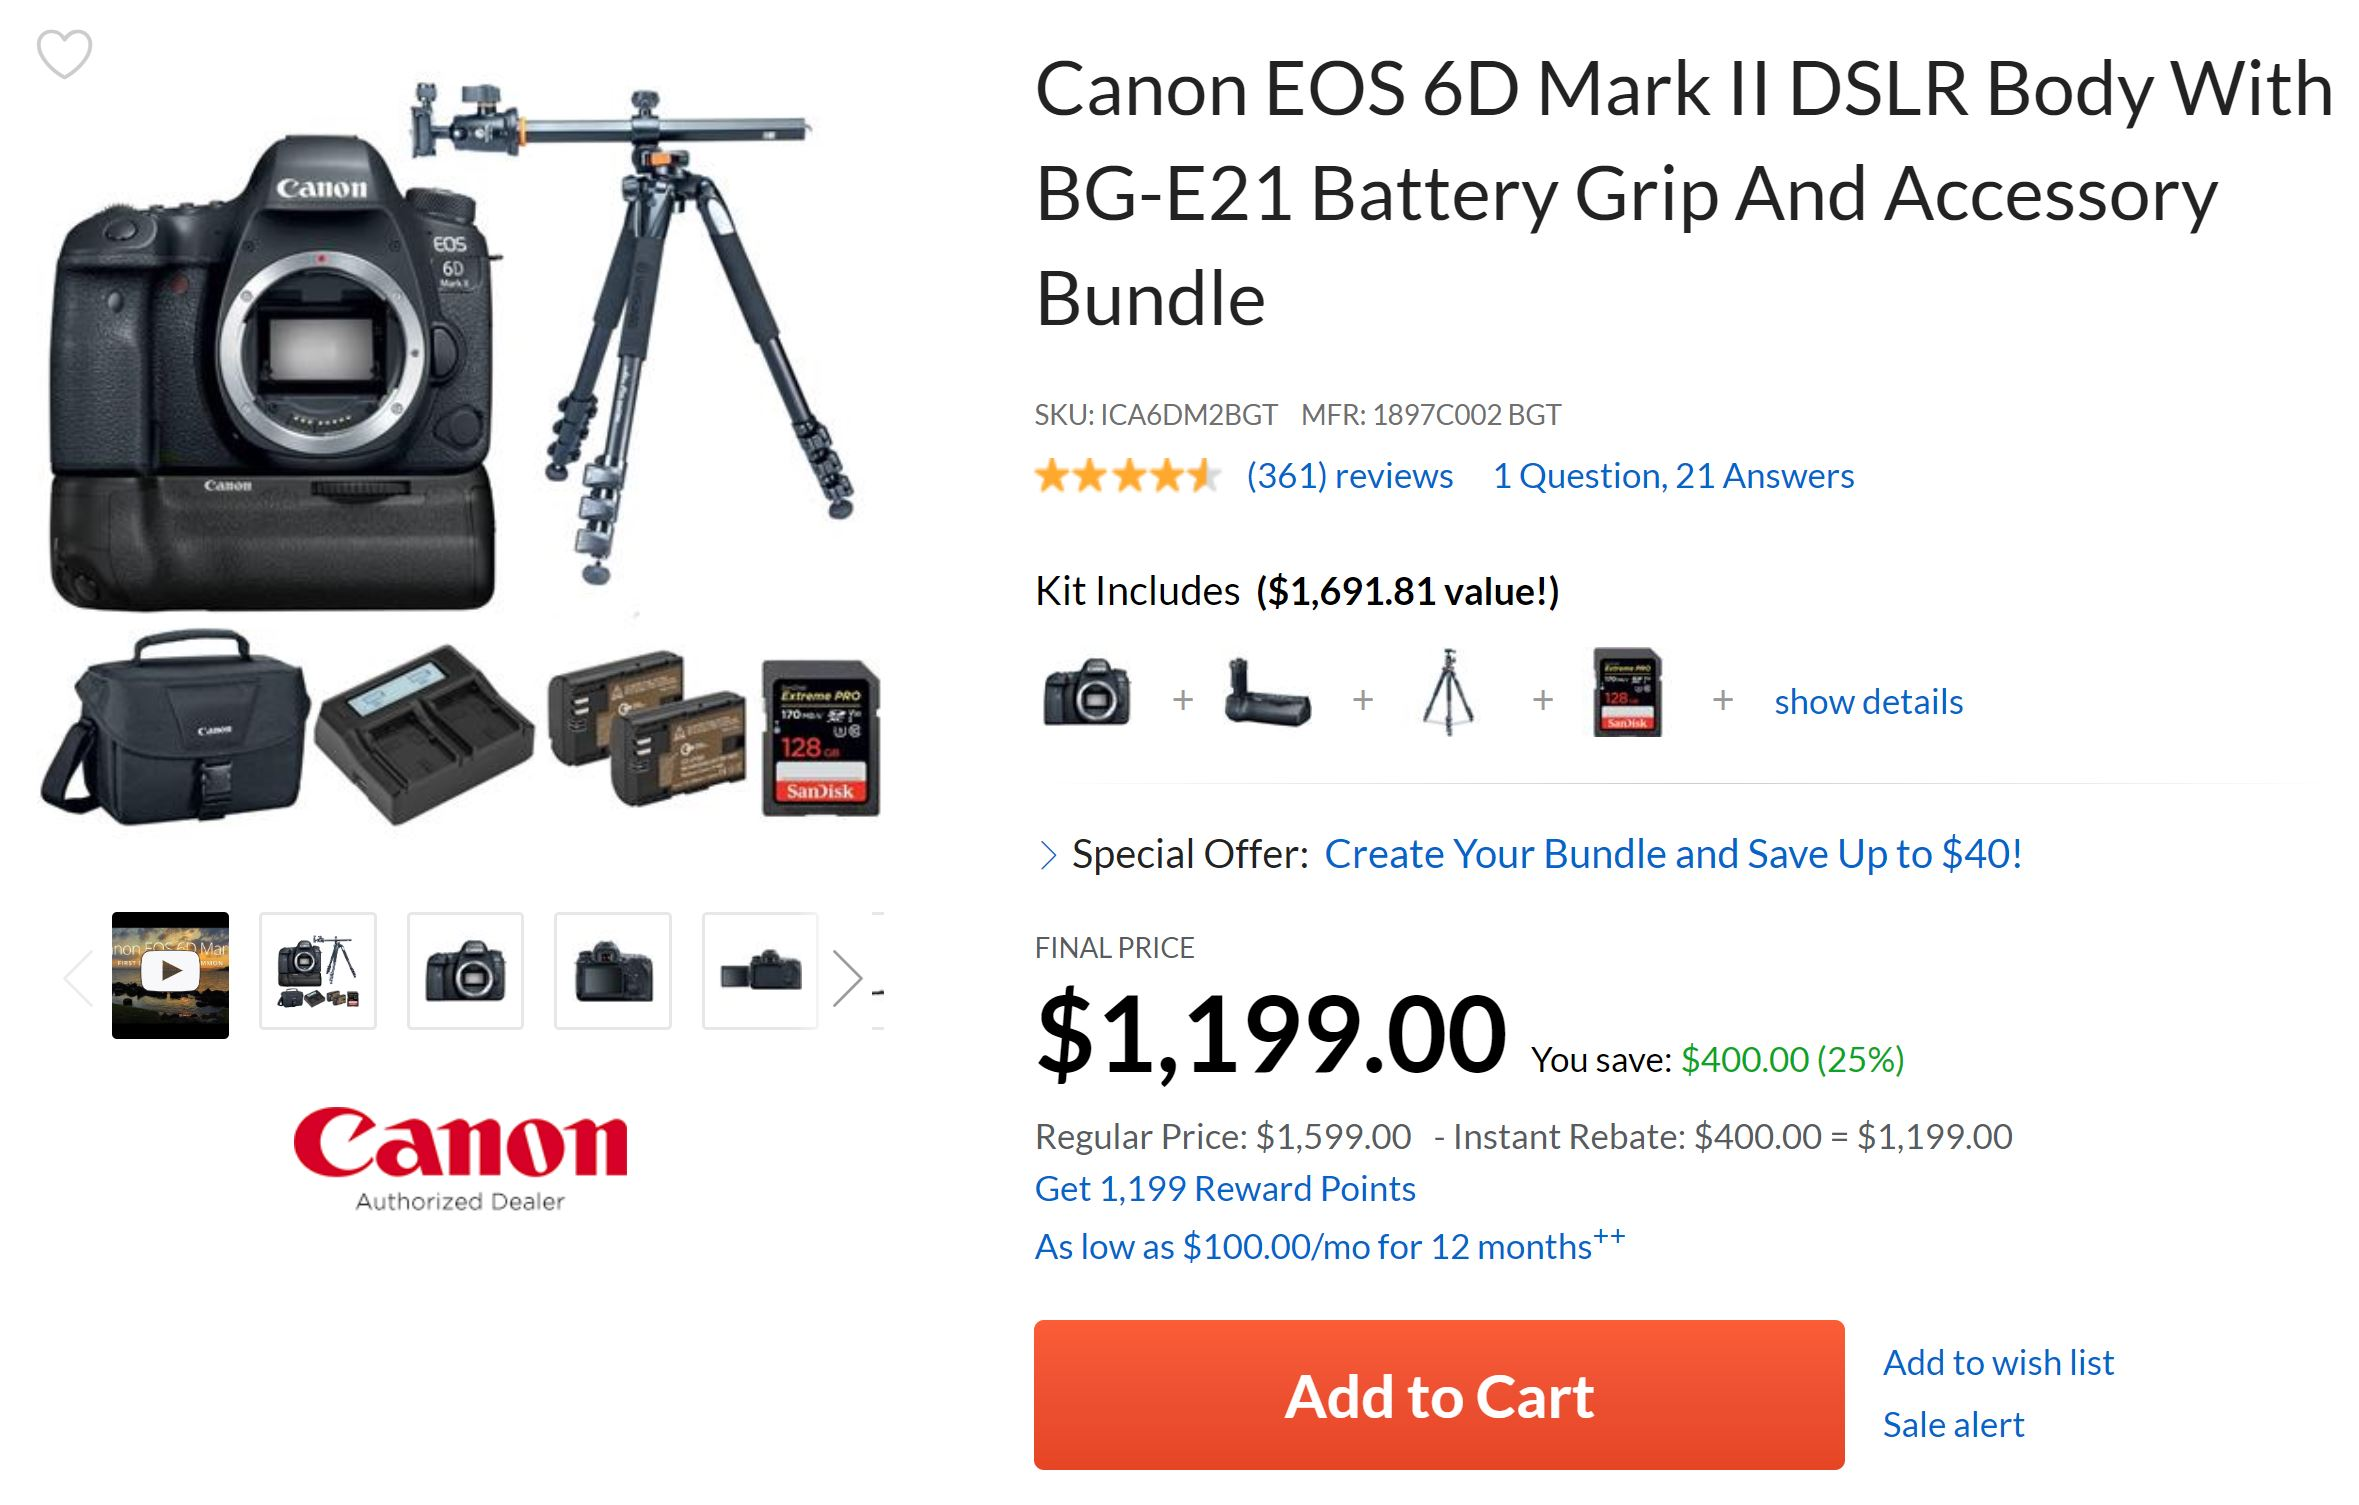 Hot Deal – Canon 6D Mark II w/ BG-E21 + Tripod + 128GB SDXC + More for $1,199 at Adorama !